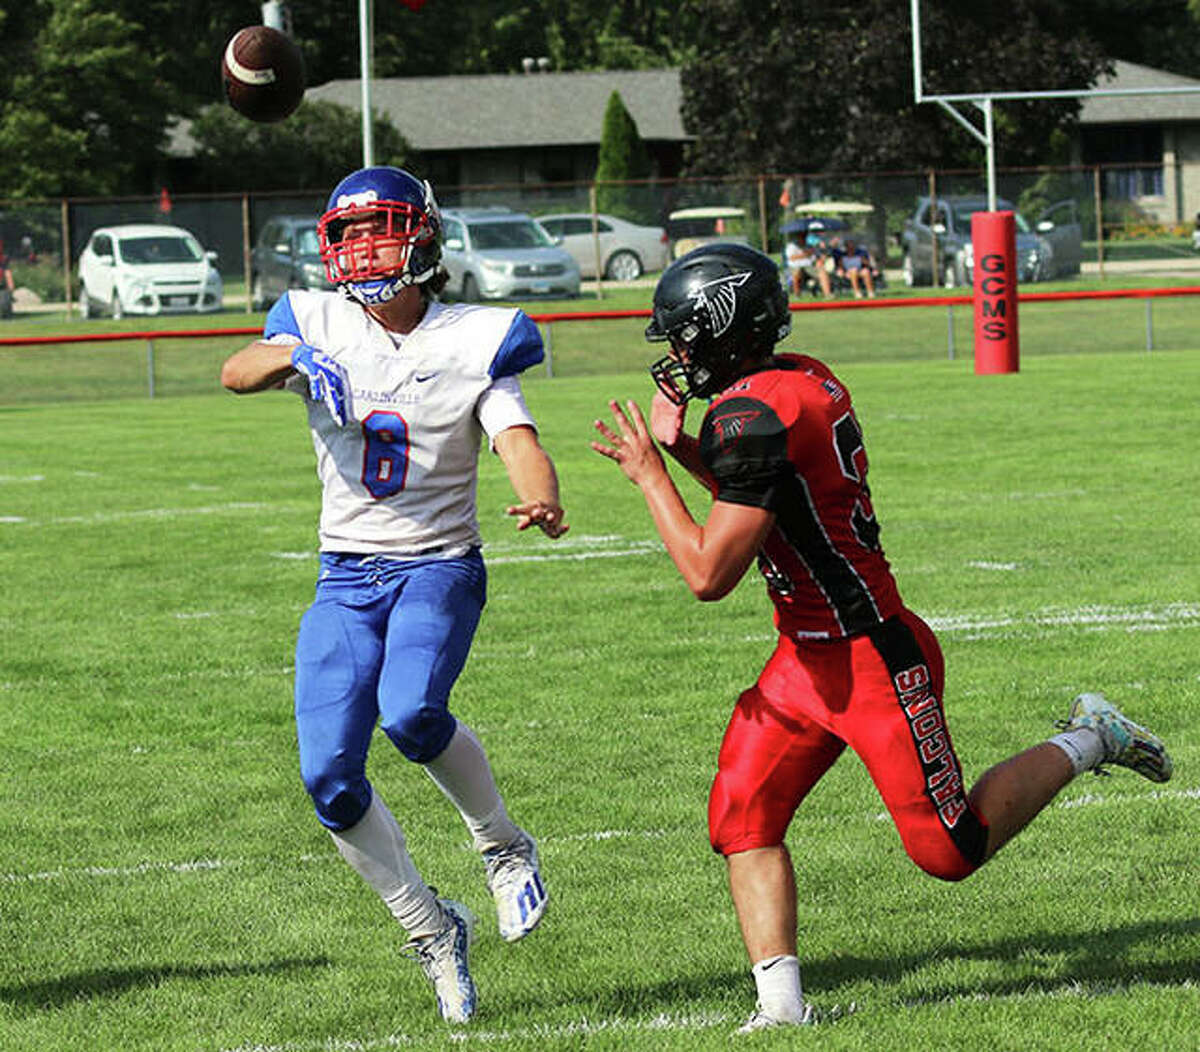 Carlinville quarterback Ayden Tiburzi (8) shown throwing under pressure from a Gibson City defender in a Week 1 game at Gibson City, threw a career-high five touchdown passes Friday night in the Cavs' win over Hillsboro in Carlinville.